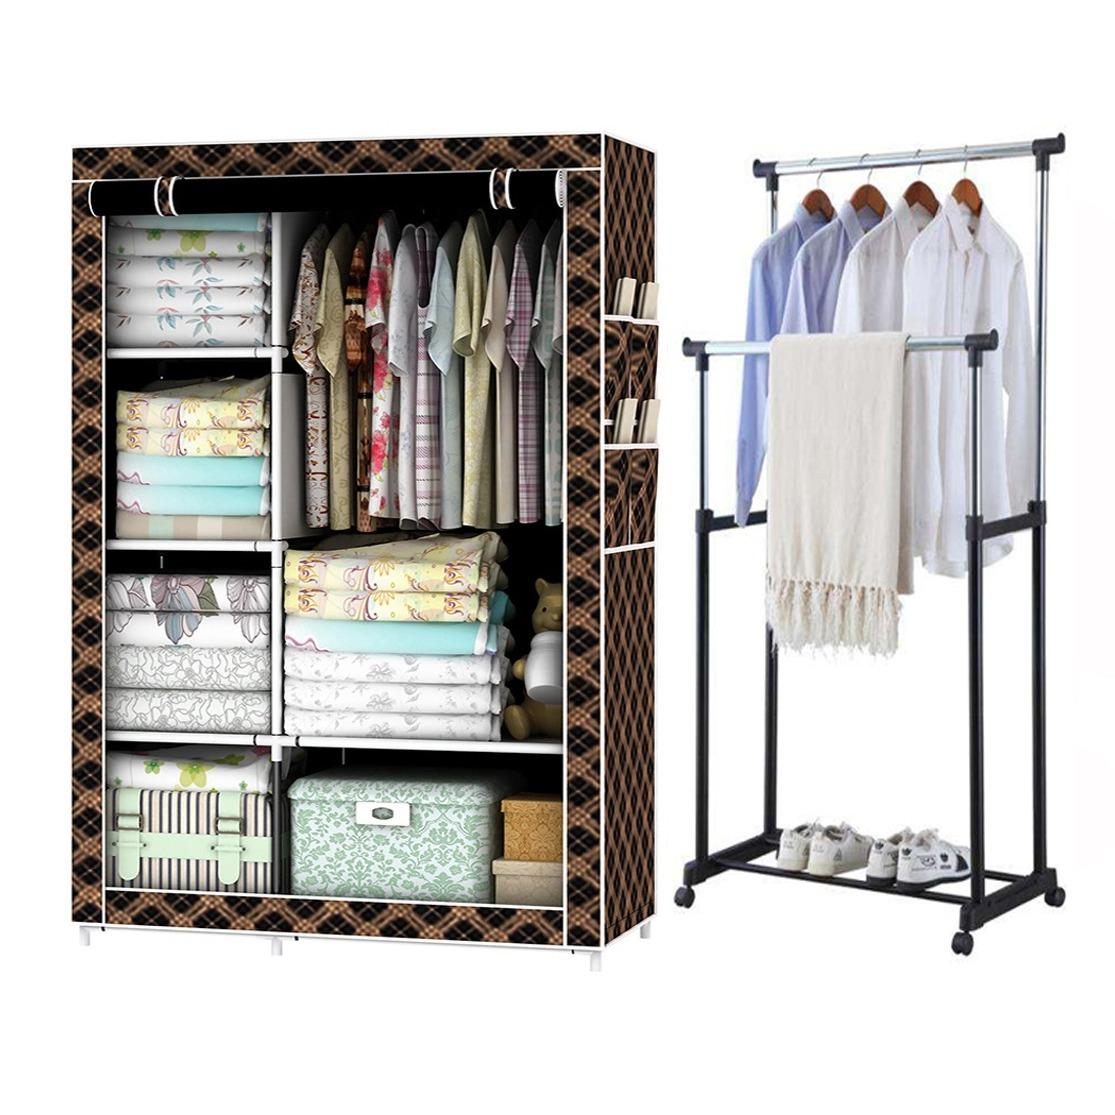 Cheap Wardrobe Closet Part - 28: 105NT Storage Wardrobe Cabinet (Brown Stripe) With Adjustable Double Pole  Clothes Rack